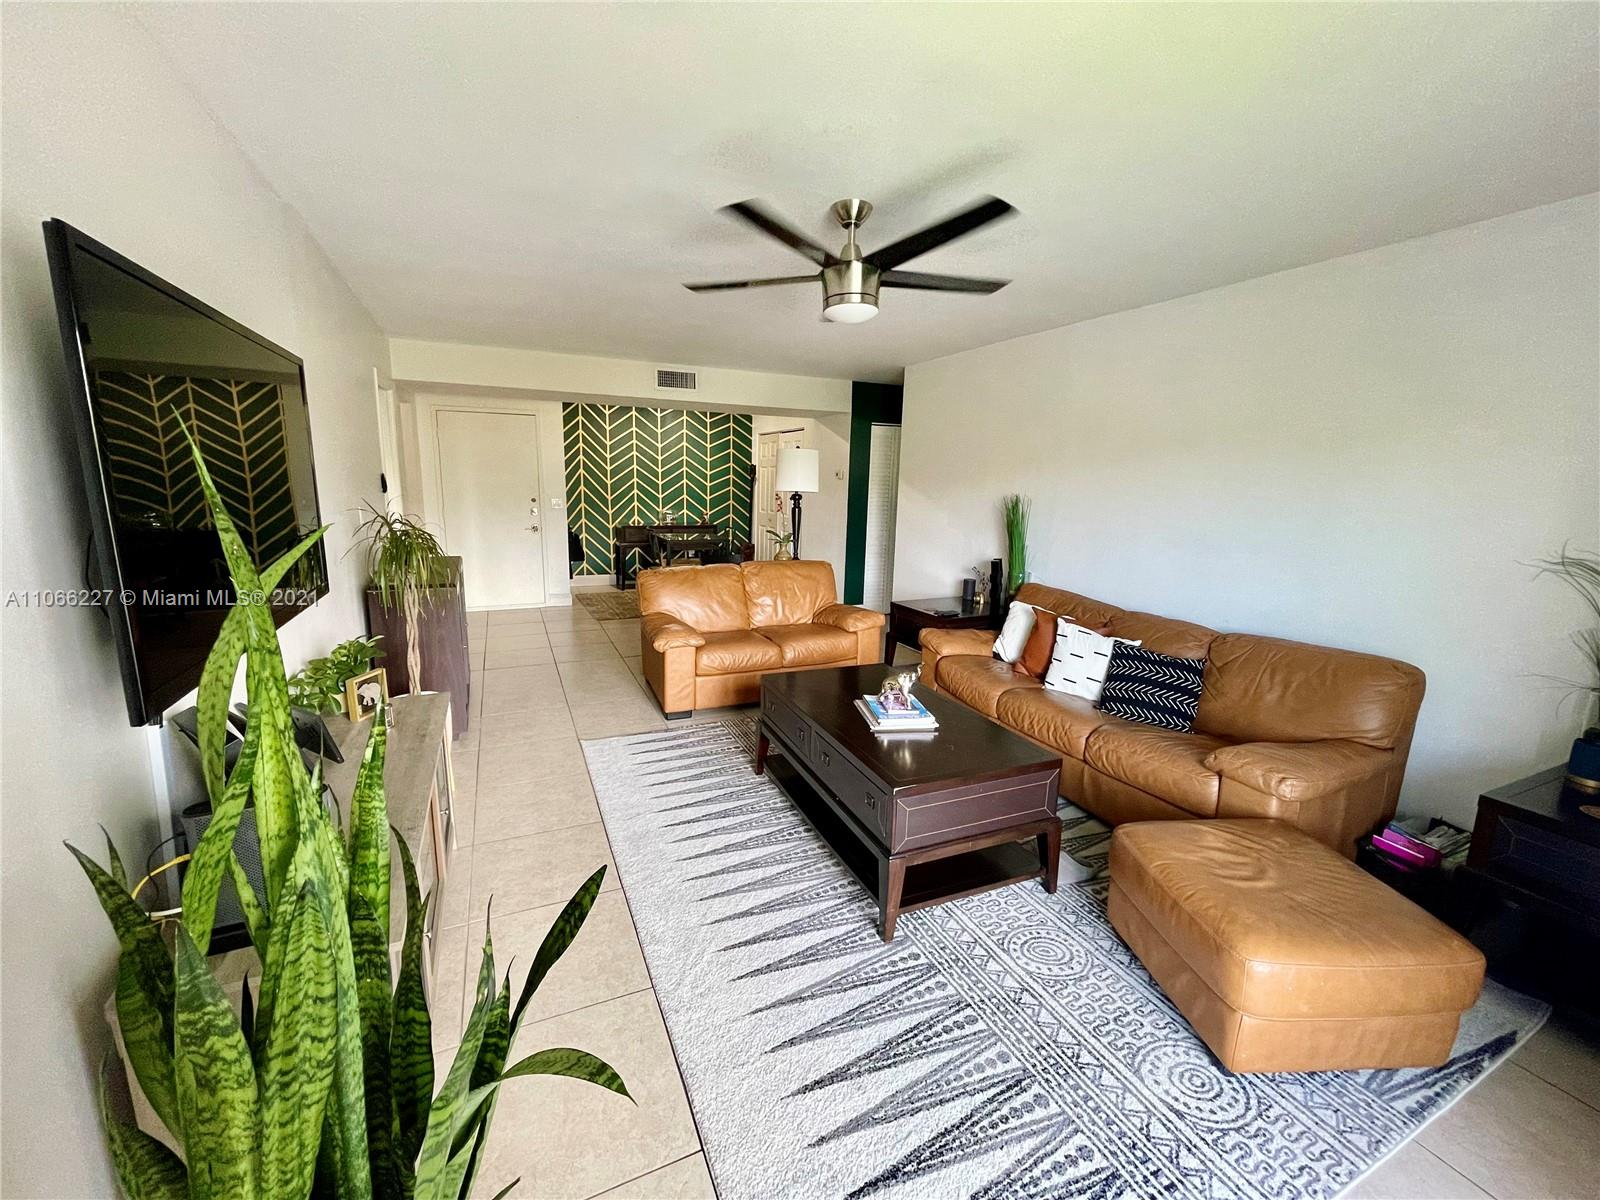 Beautiful 2/2 apartment in Kings Creek South located in the Dadeland area. Tile floors throughout, large balcony with beautiful canal views, spacious split floor plan. Community offers many amenities: 2 pools, hot whirlpool spa, tennis court, full gym, meeting room and party room rental, 24hr security, guard house, and much more! LOCATION! LOCATION! LOCATION! GREAT FOR INVESTORS!